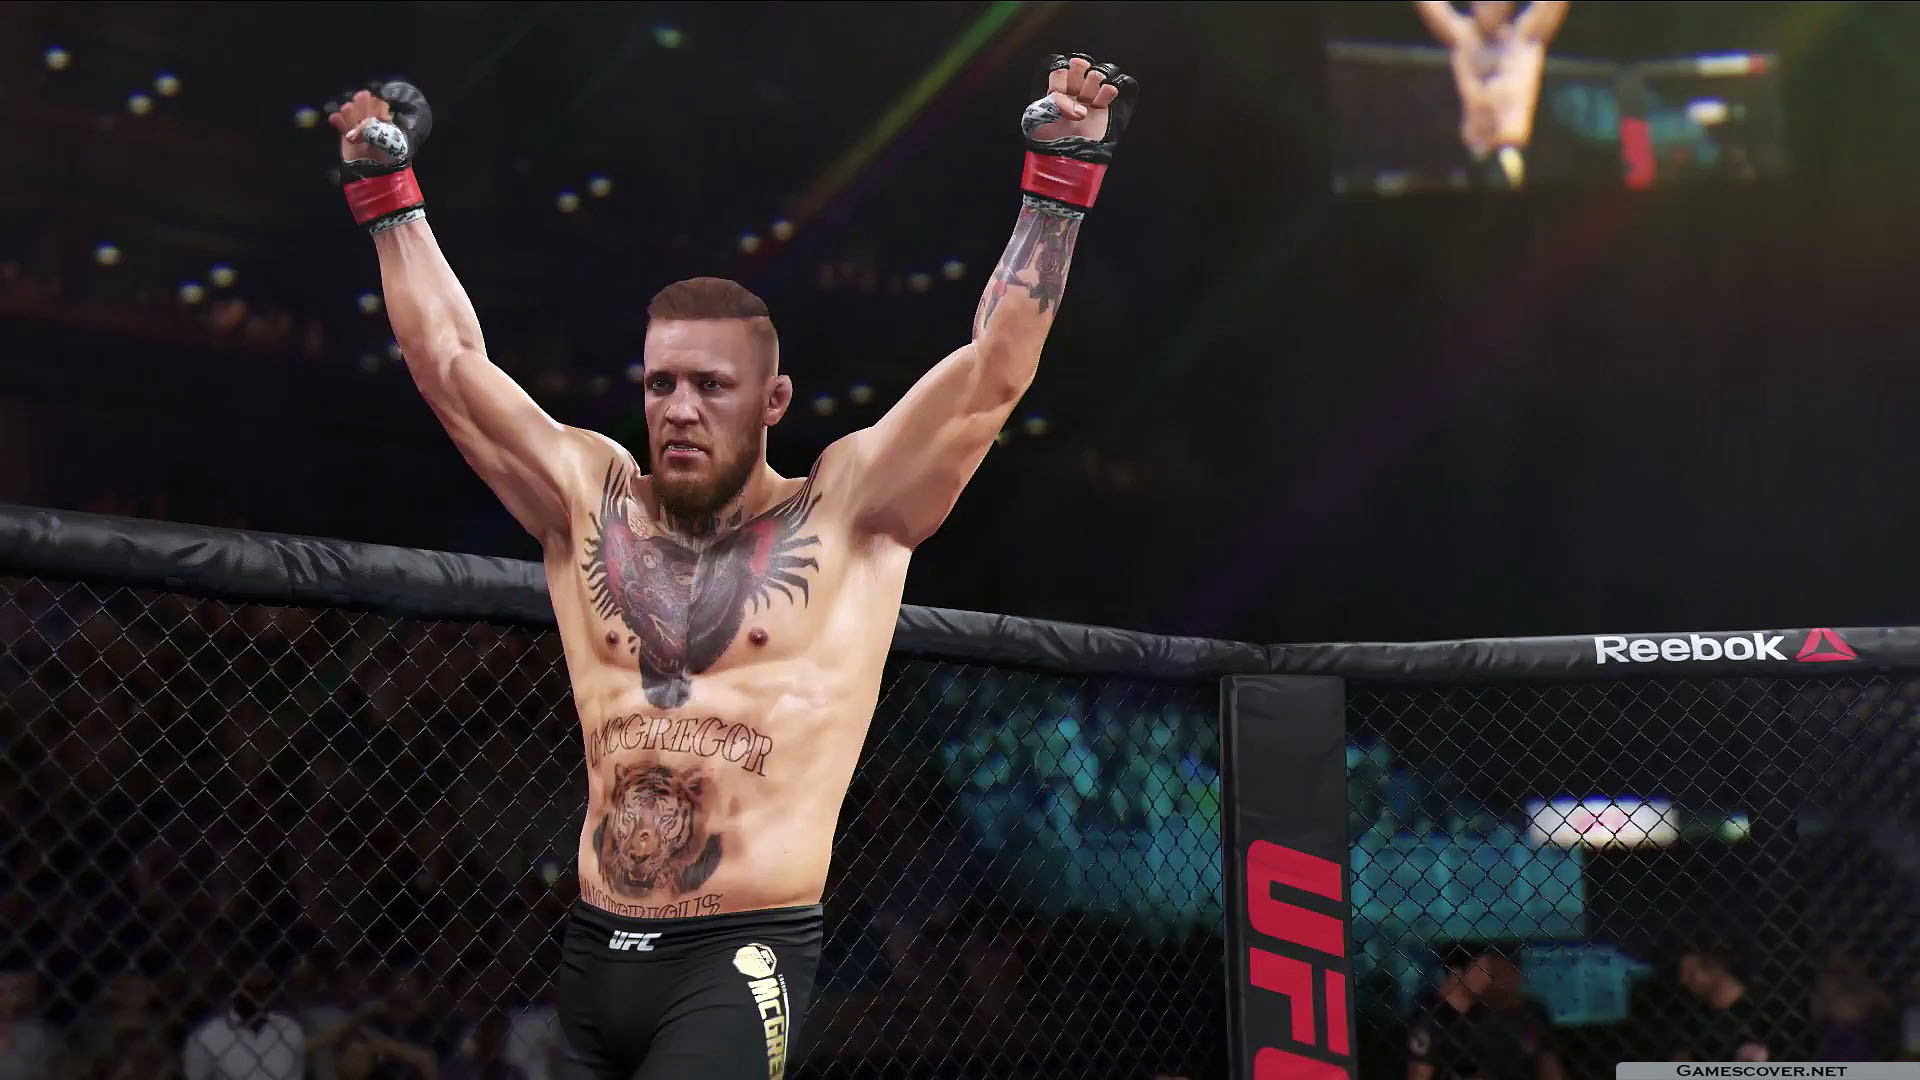 Ea sports ufc 2 wallpapers read games reviews play online games ea sports ufc 2 cool hd wallpaper 1920x1080 voltagebd Image collections